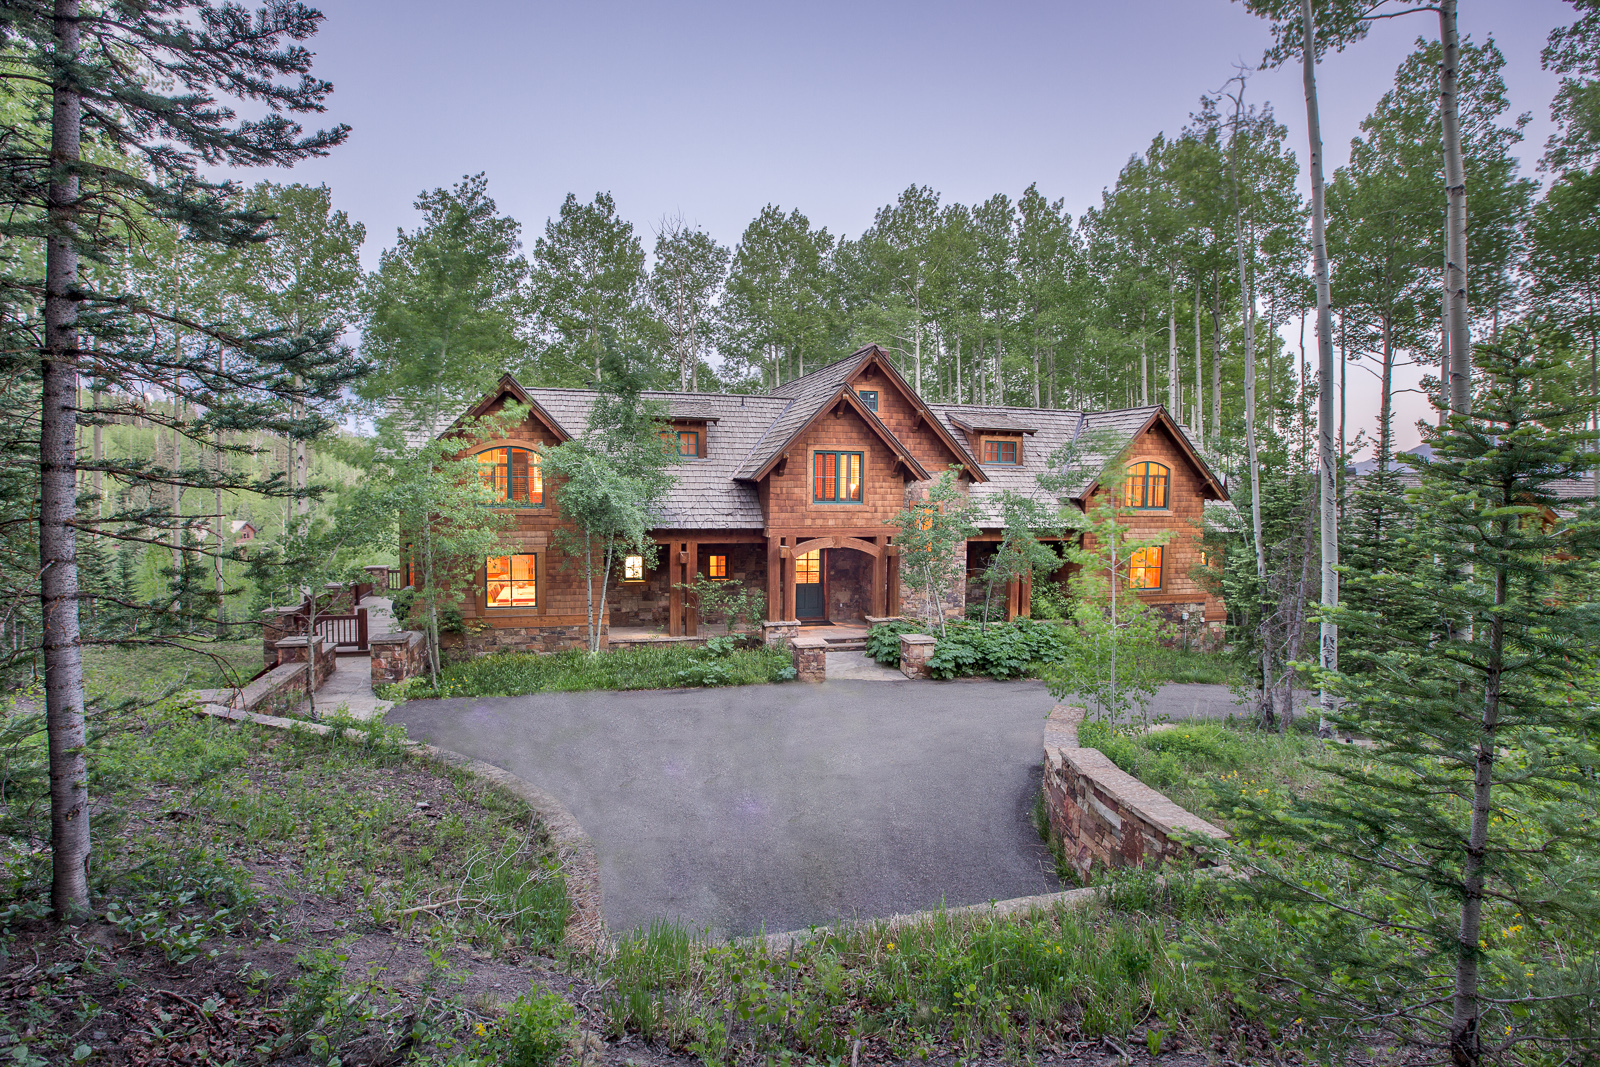 Single Family Home for Sale at 416 Benchmark Drive 416 Benchmark Drive Mountain Village Mountain Village, Telluride, Colorado 81435 United States